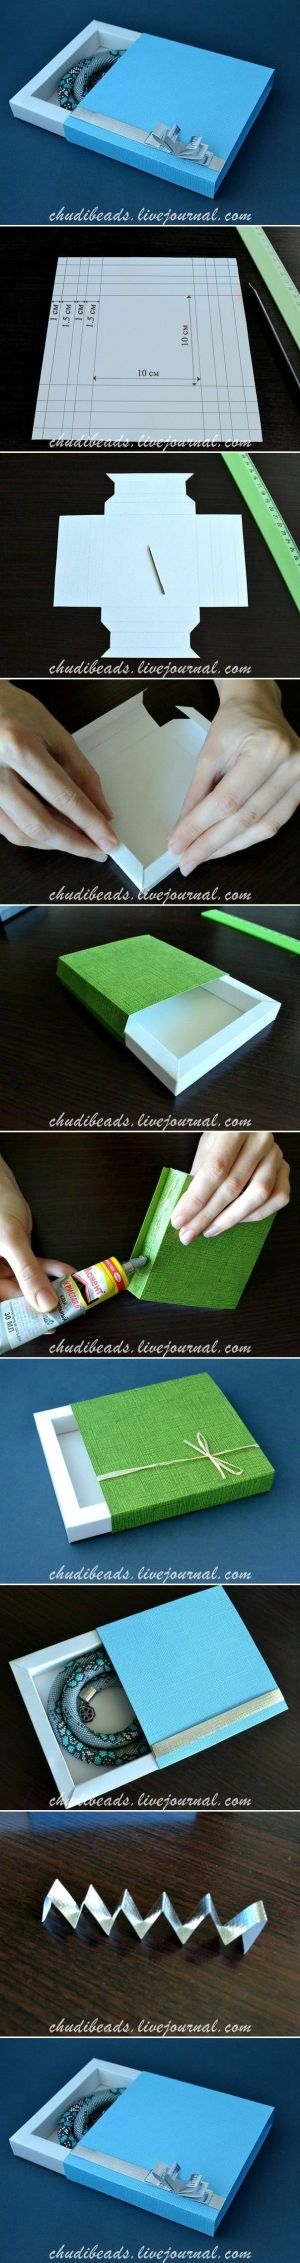 DIY Square Gift Box DIY Square Gift Box by diyforever